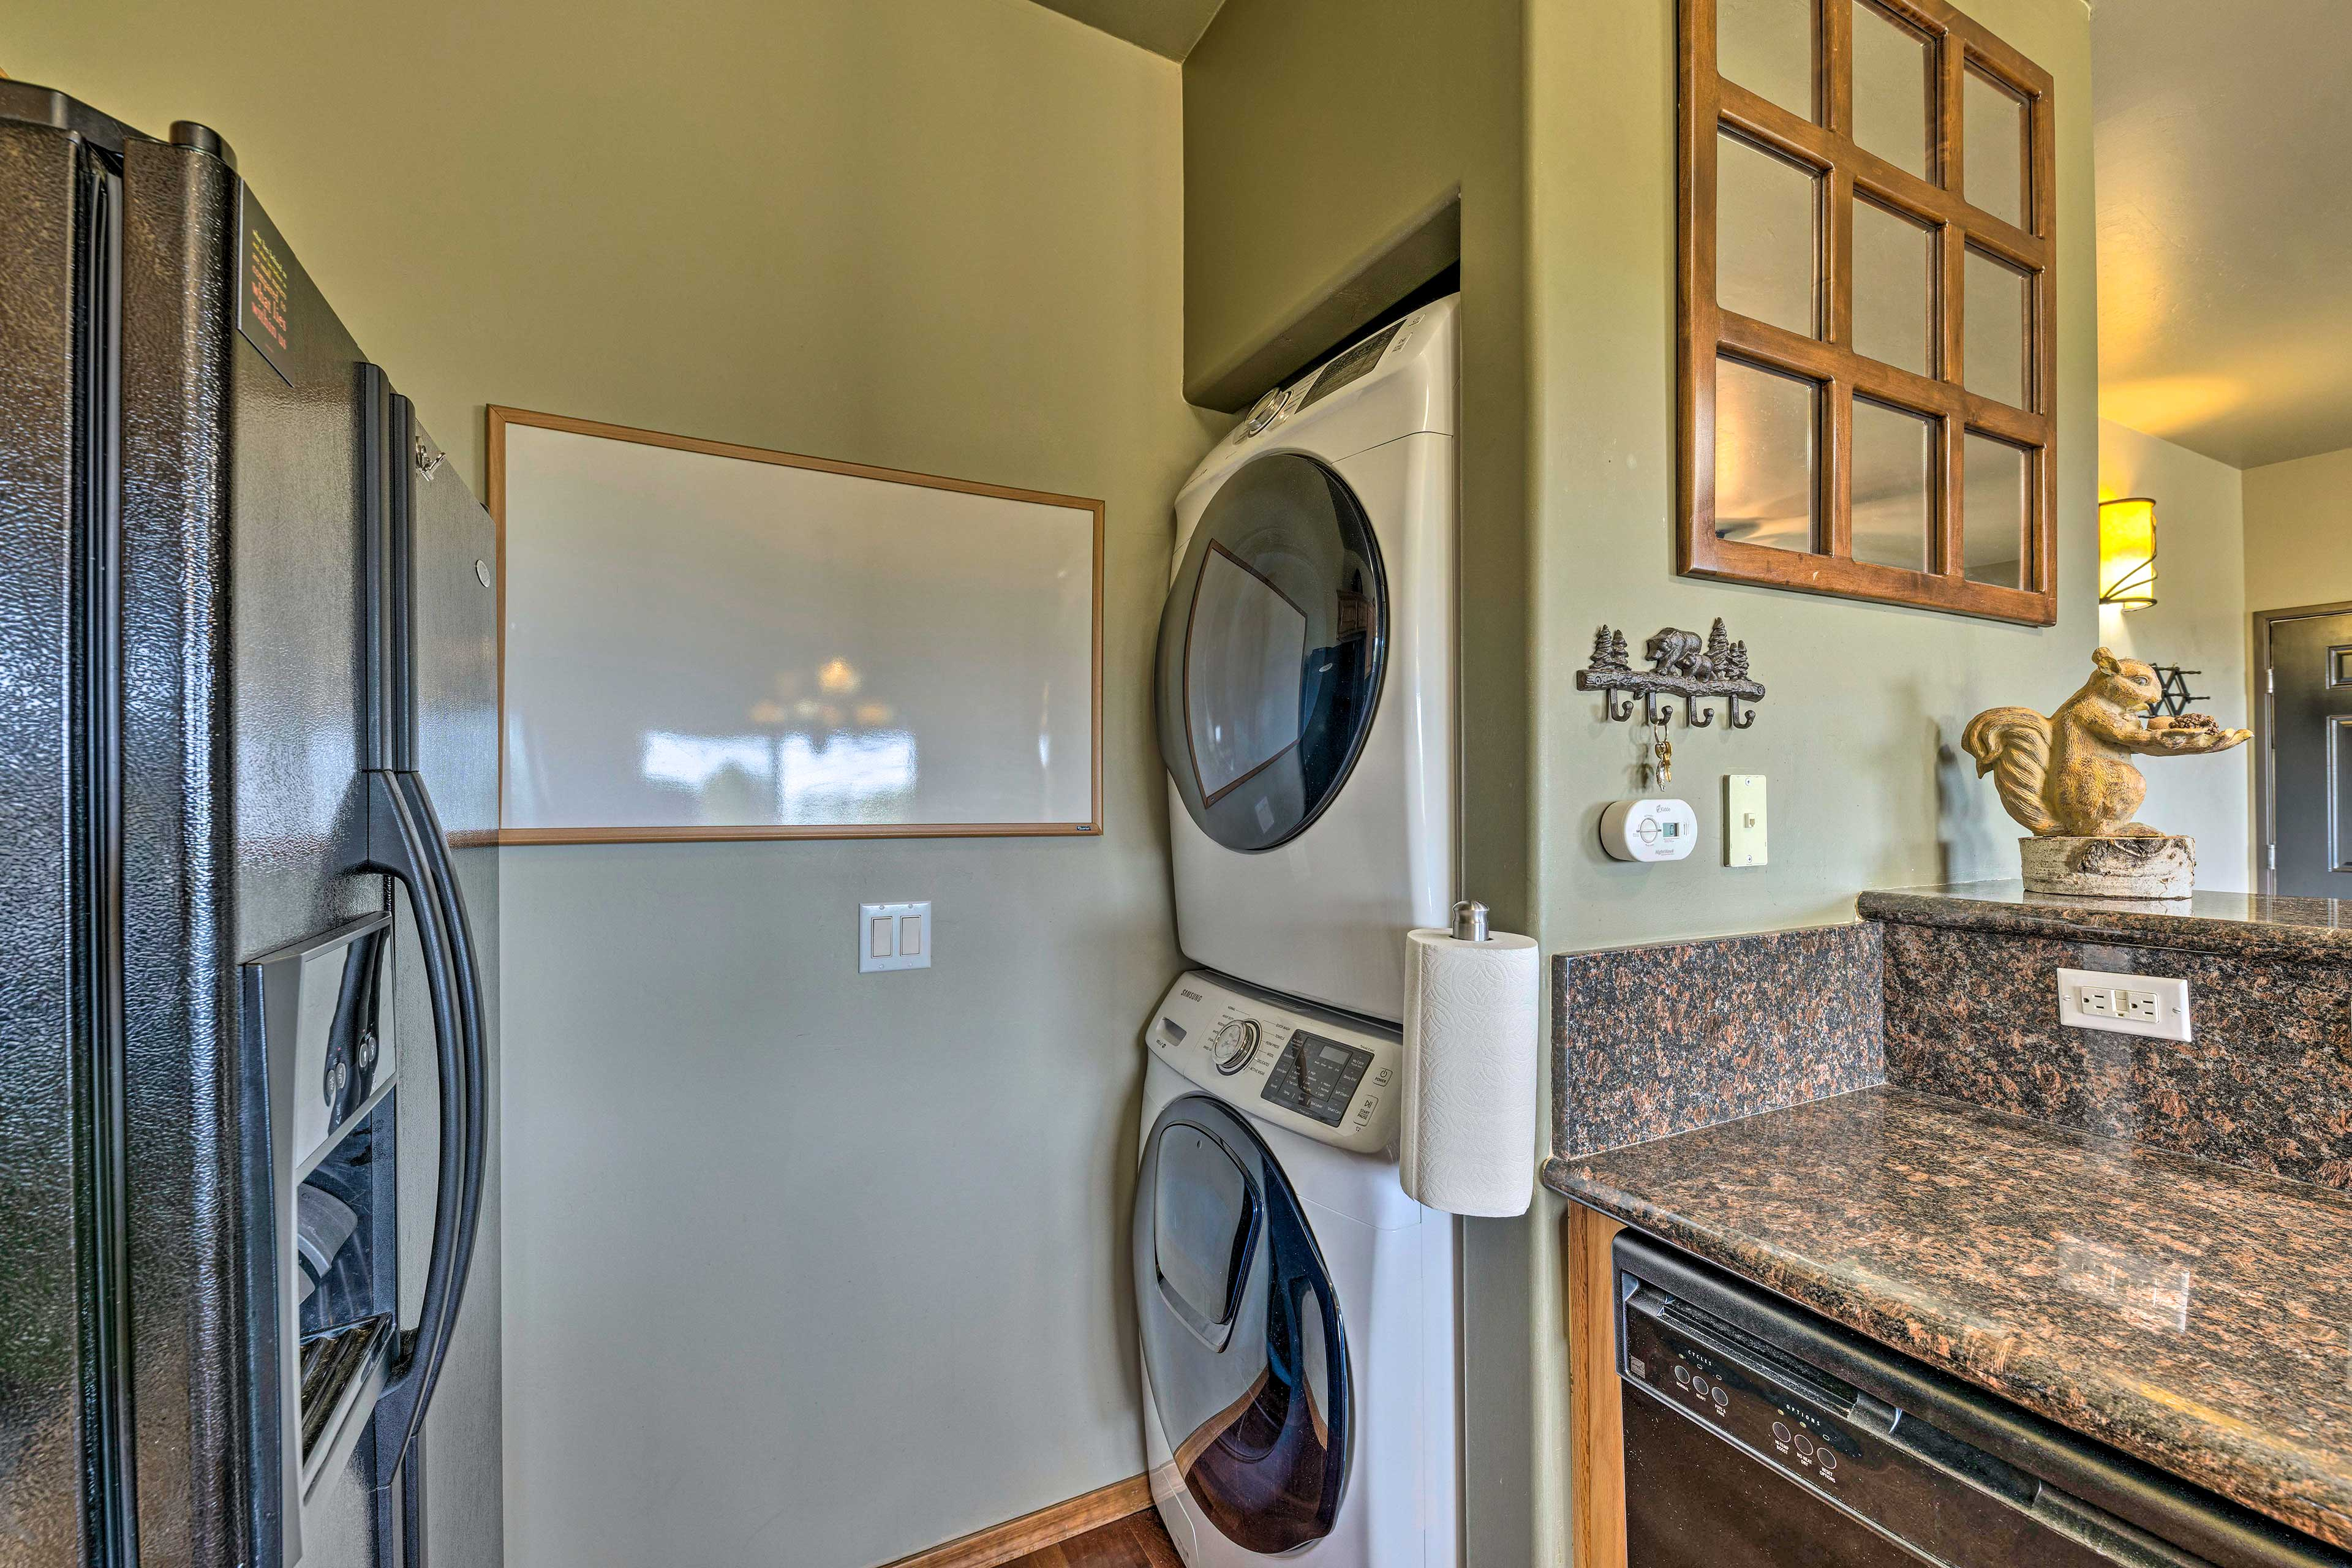 In-unit laundry machines let your swimsuits stay fresh after dip in the lake.